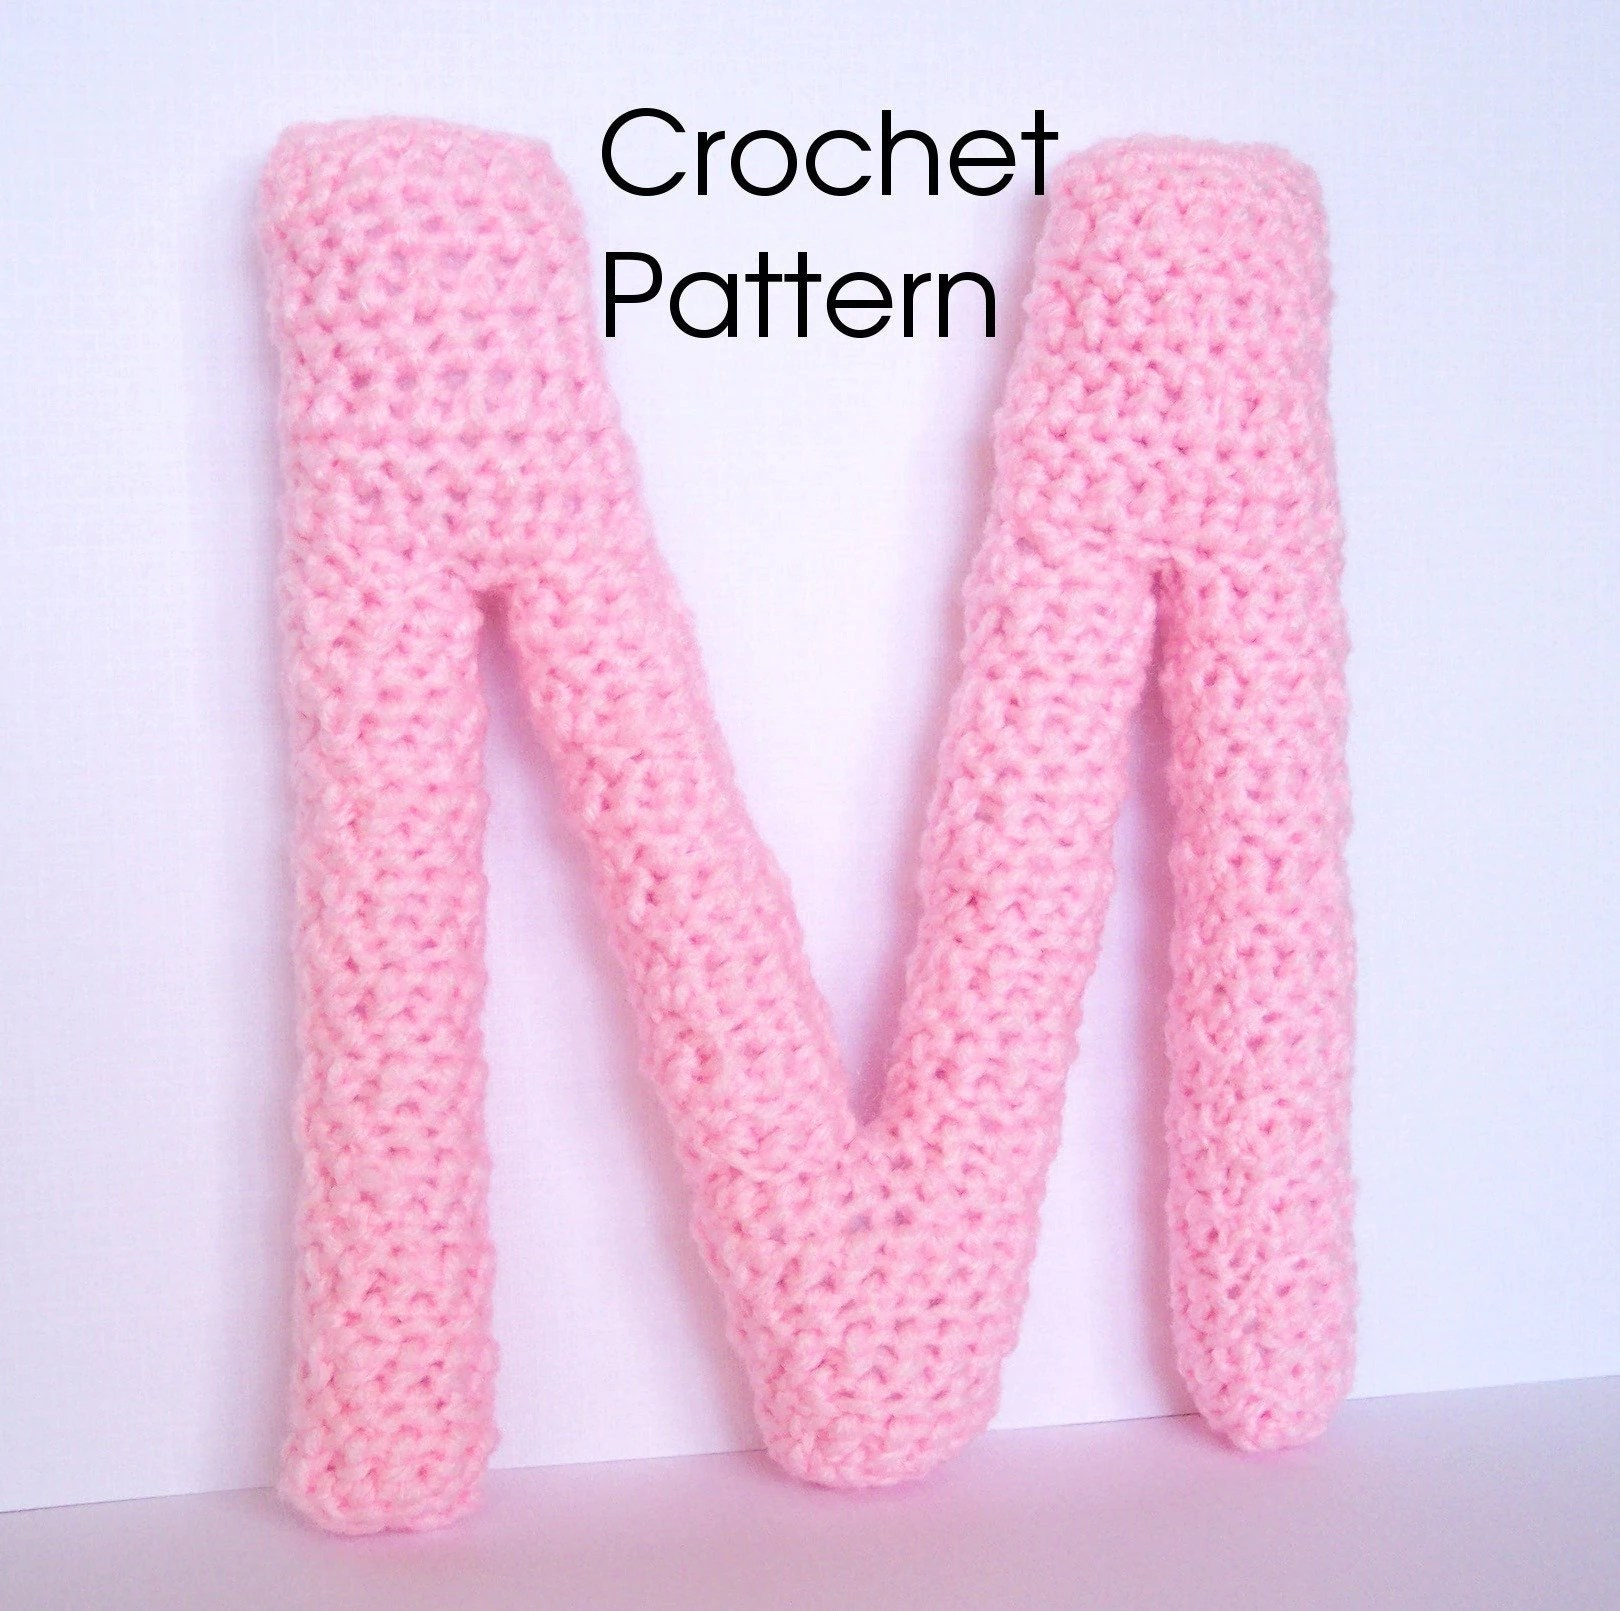 Free Crochet Alphabet Pattern Crochet Tutorials